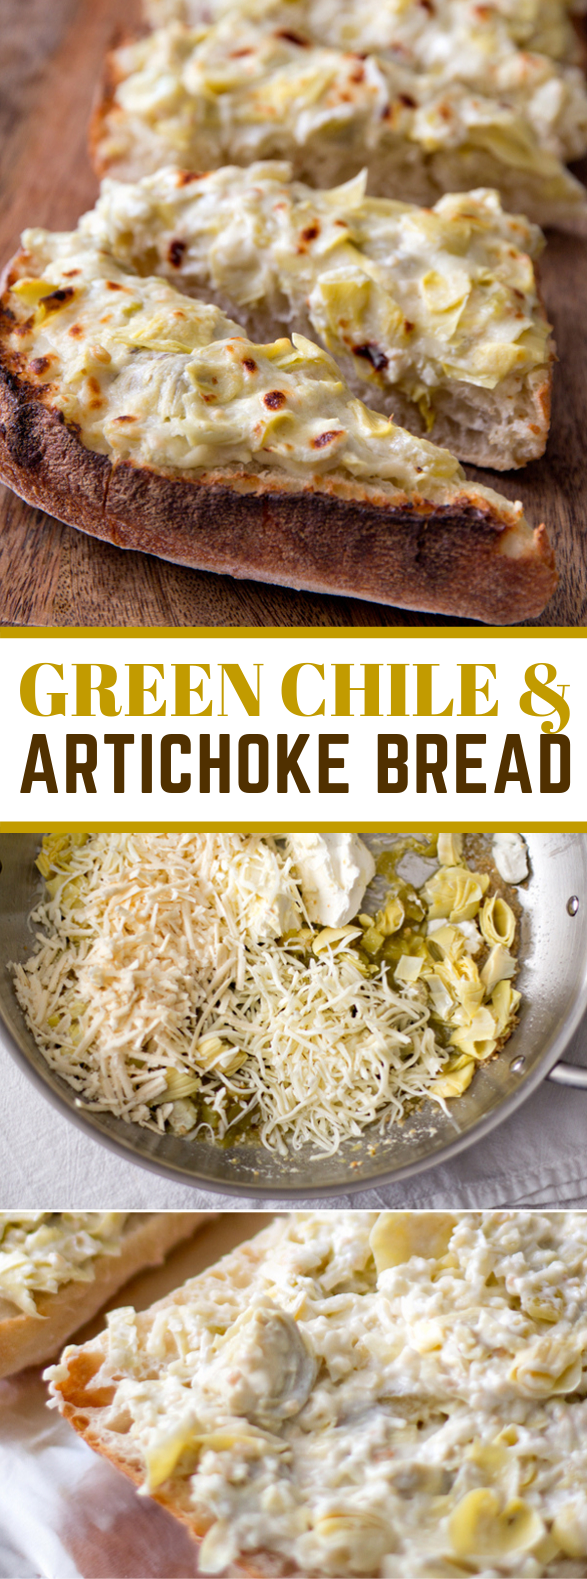 GREEN CHILE & ARTICHOKE BREAD #appetizers #lunch